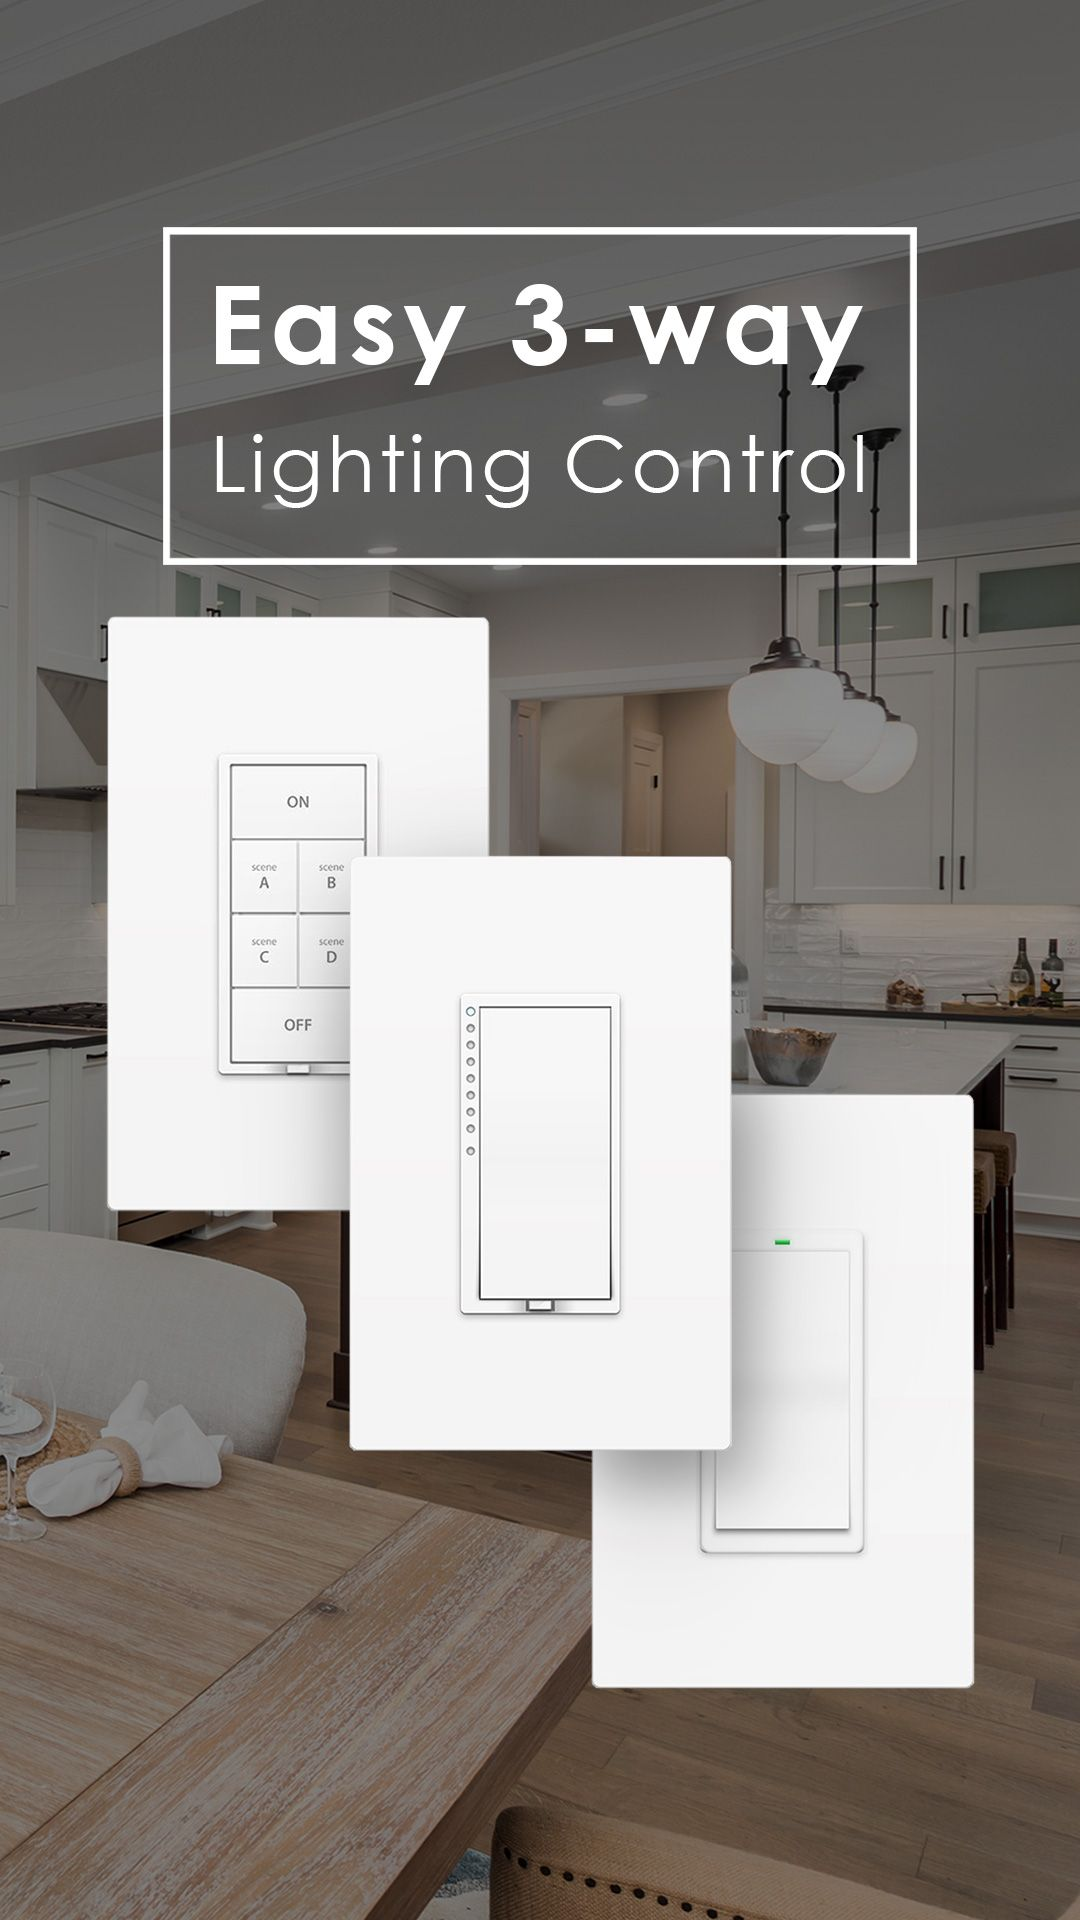 Easy 3 Way And 4 Lighting Control For The Home Light Switch Repair With Insteon Multi Is Replace Existing Switches An Or